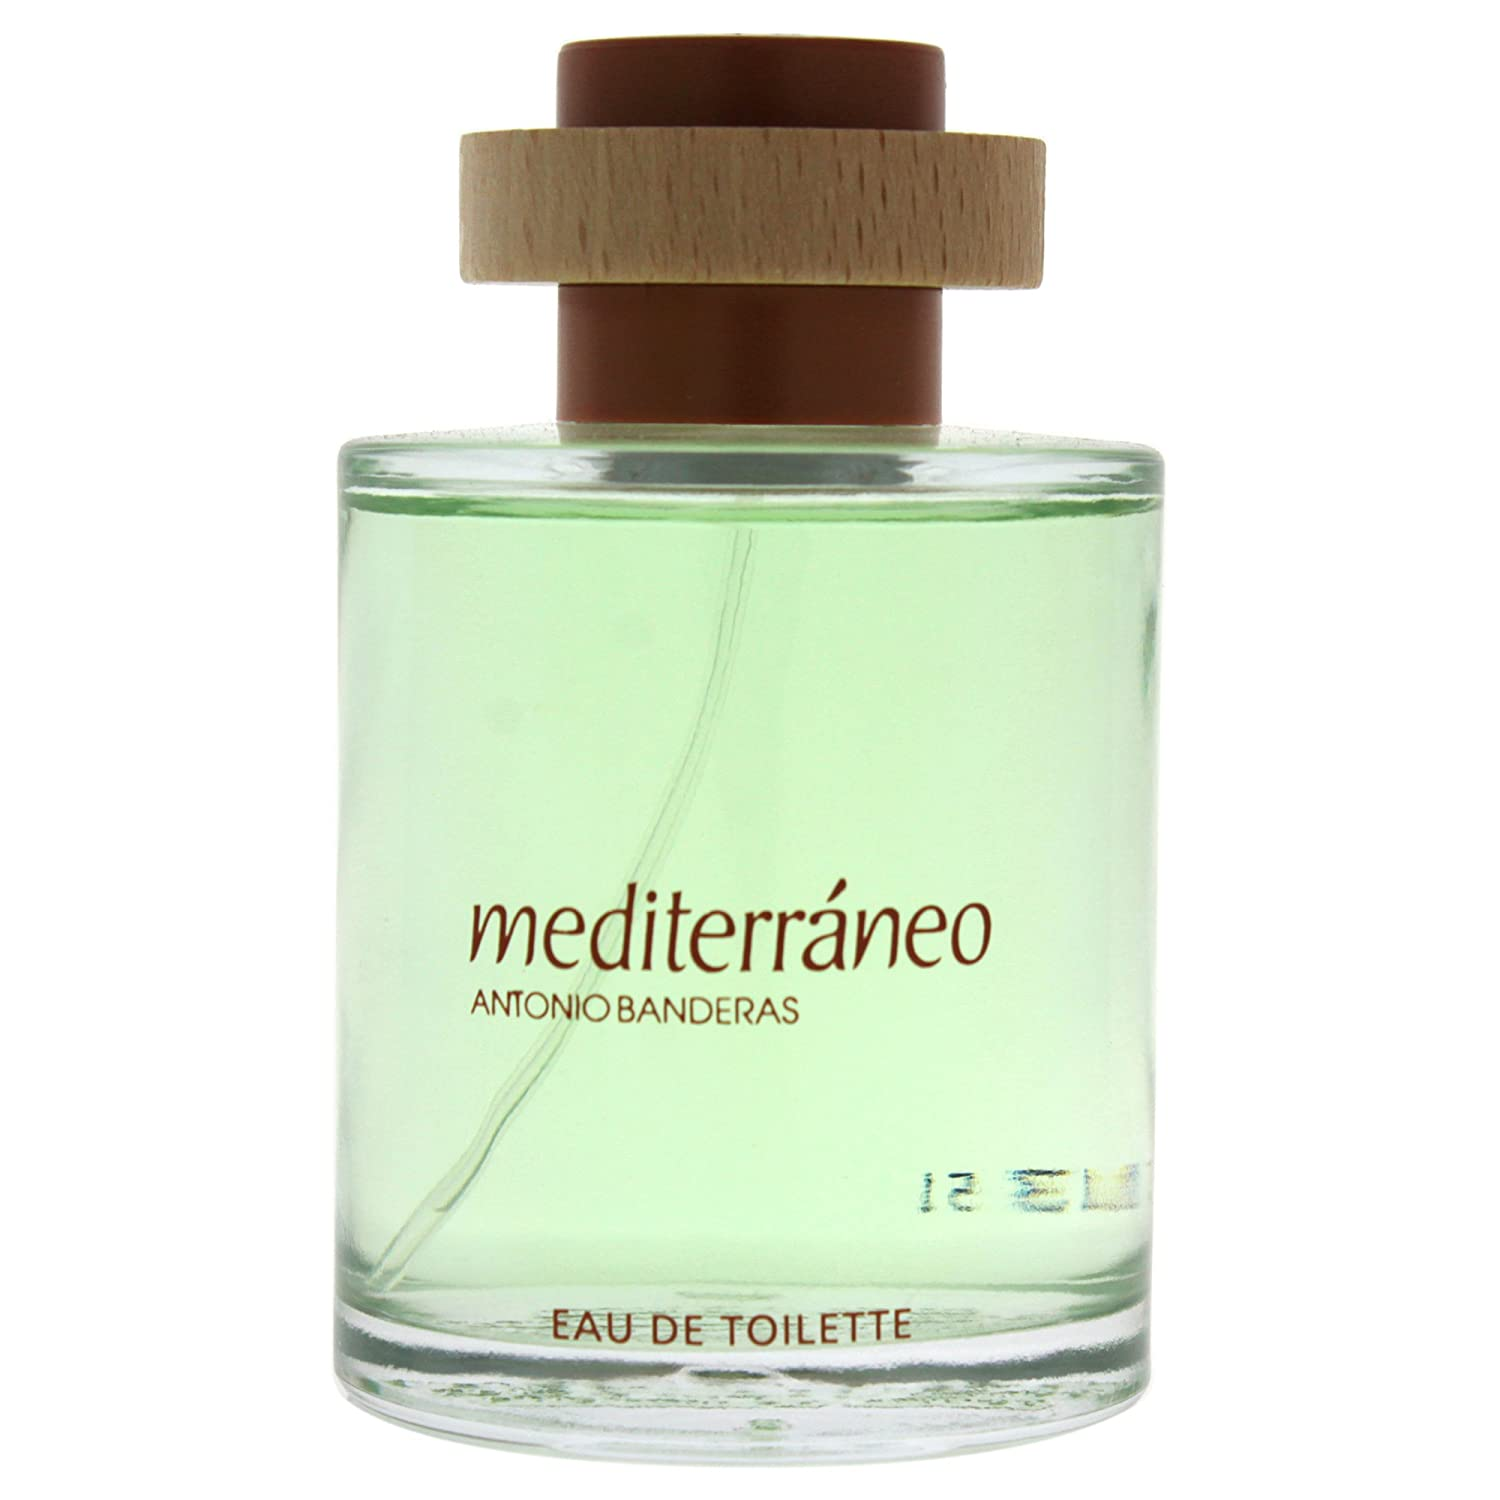 Amazon.com : Mediteraneo By Antonio Banderas For Men. Eau De Toilette Spray 3.4 Ounces : Perfume Antonio Banderas : Beauty